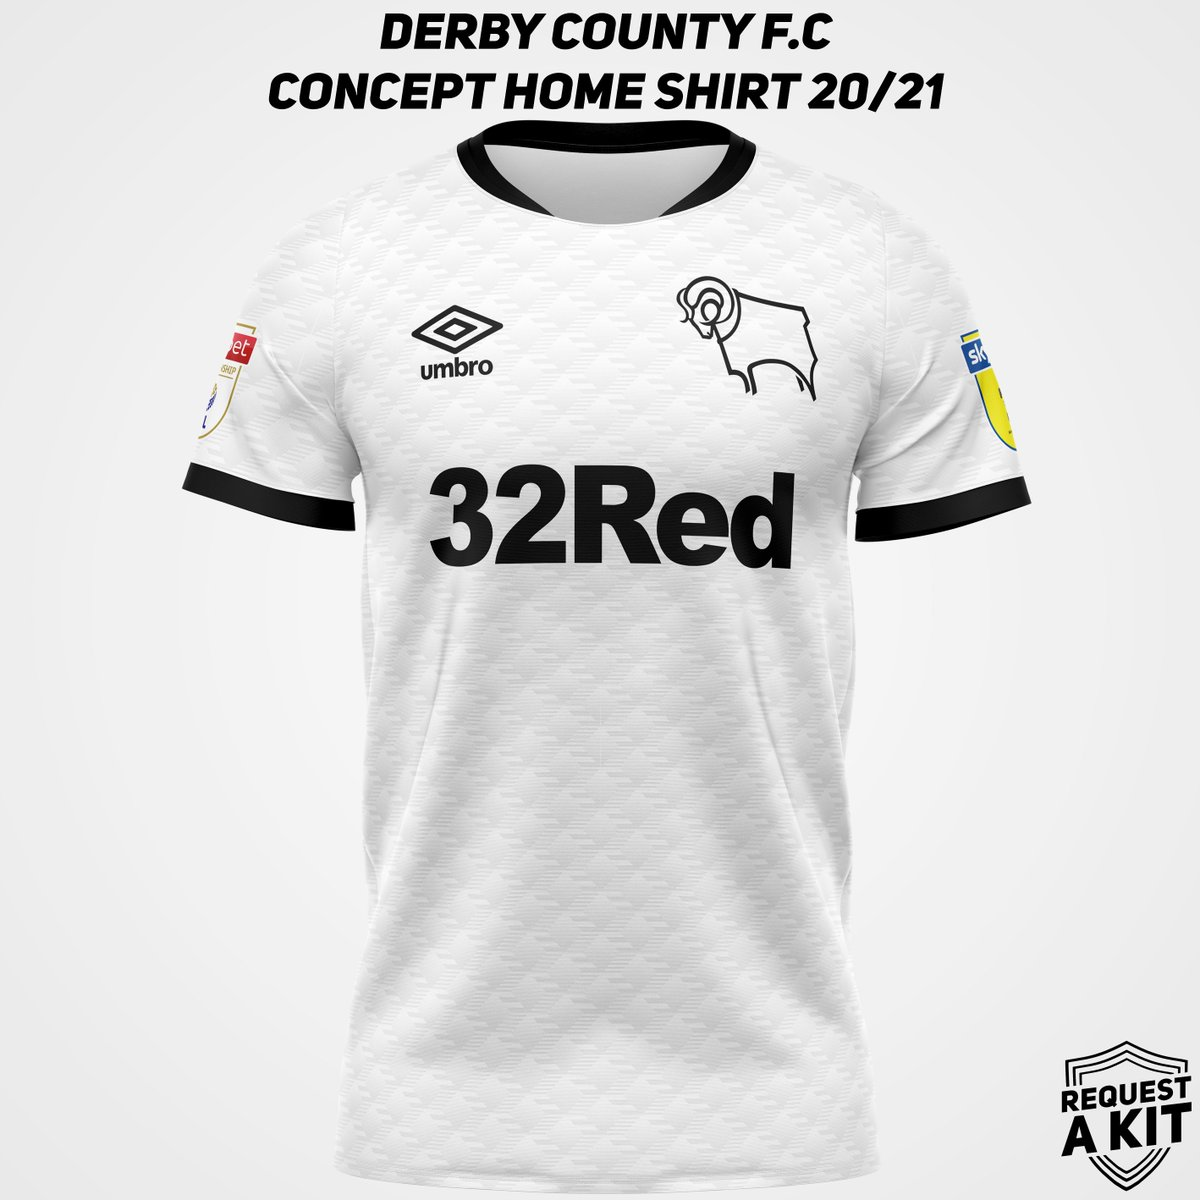 Request A Kit On Twitter Derby County F C Concept Home Away And Third Shirts 2020 21 Requested By Atahualpamaia Derby Derbycounty Dcfc Rams Dcfcfans Thatderbypride Fm19 Wearethecommunity Download For Your Football Manager Save